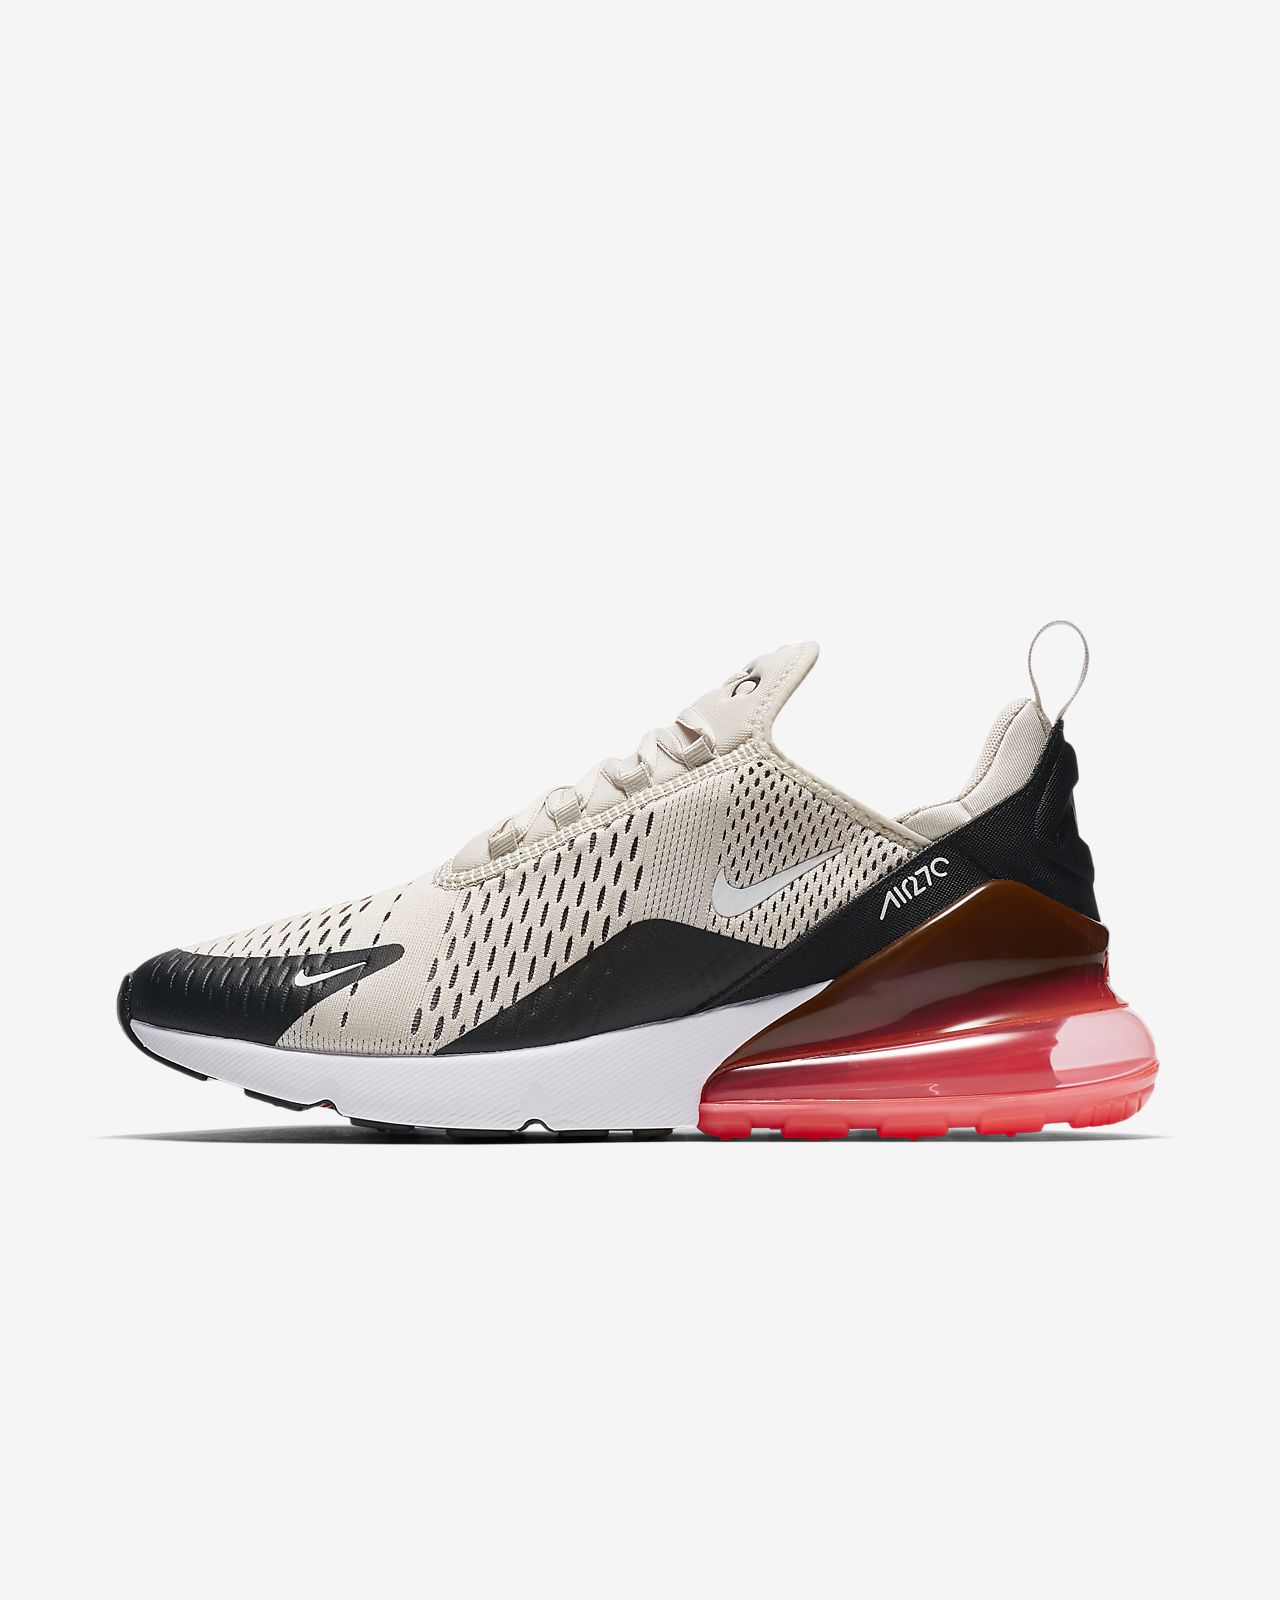 Durable Nike Air Max 27C Kpu Burgundy Black White Footwear